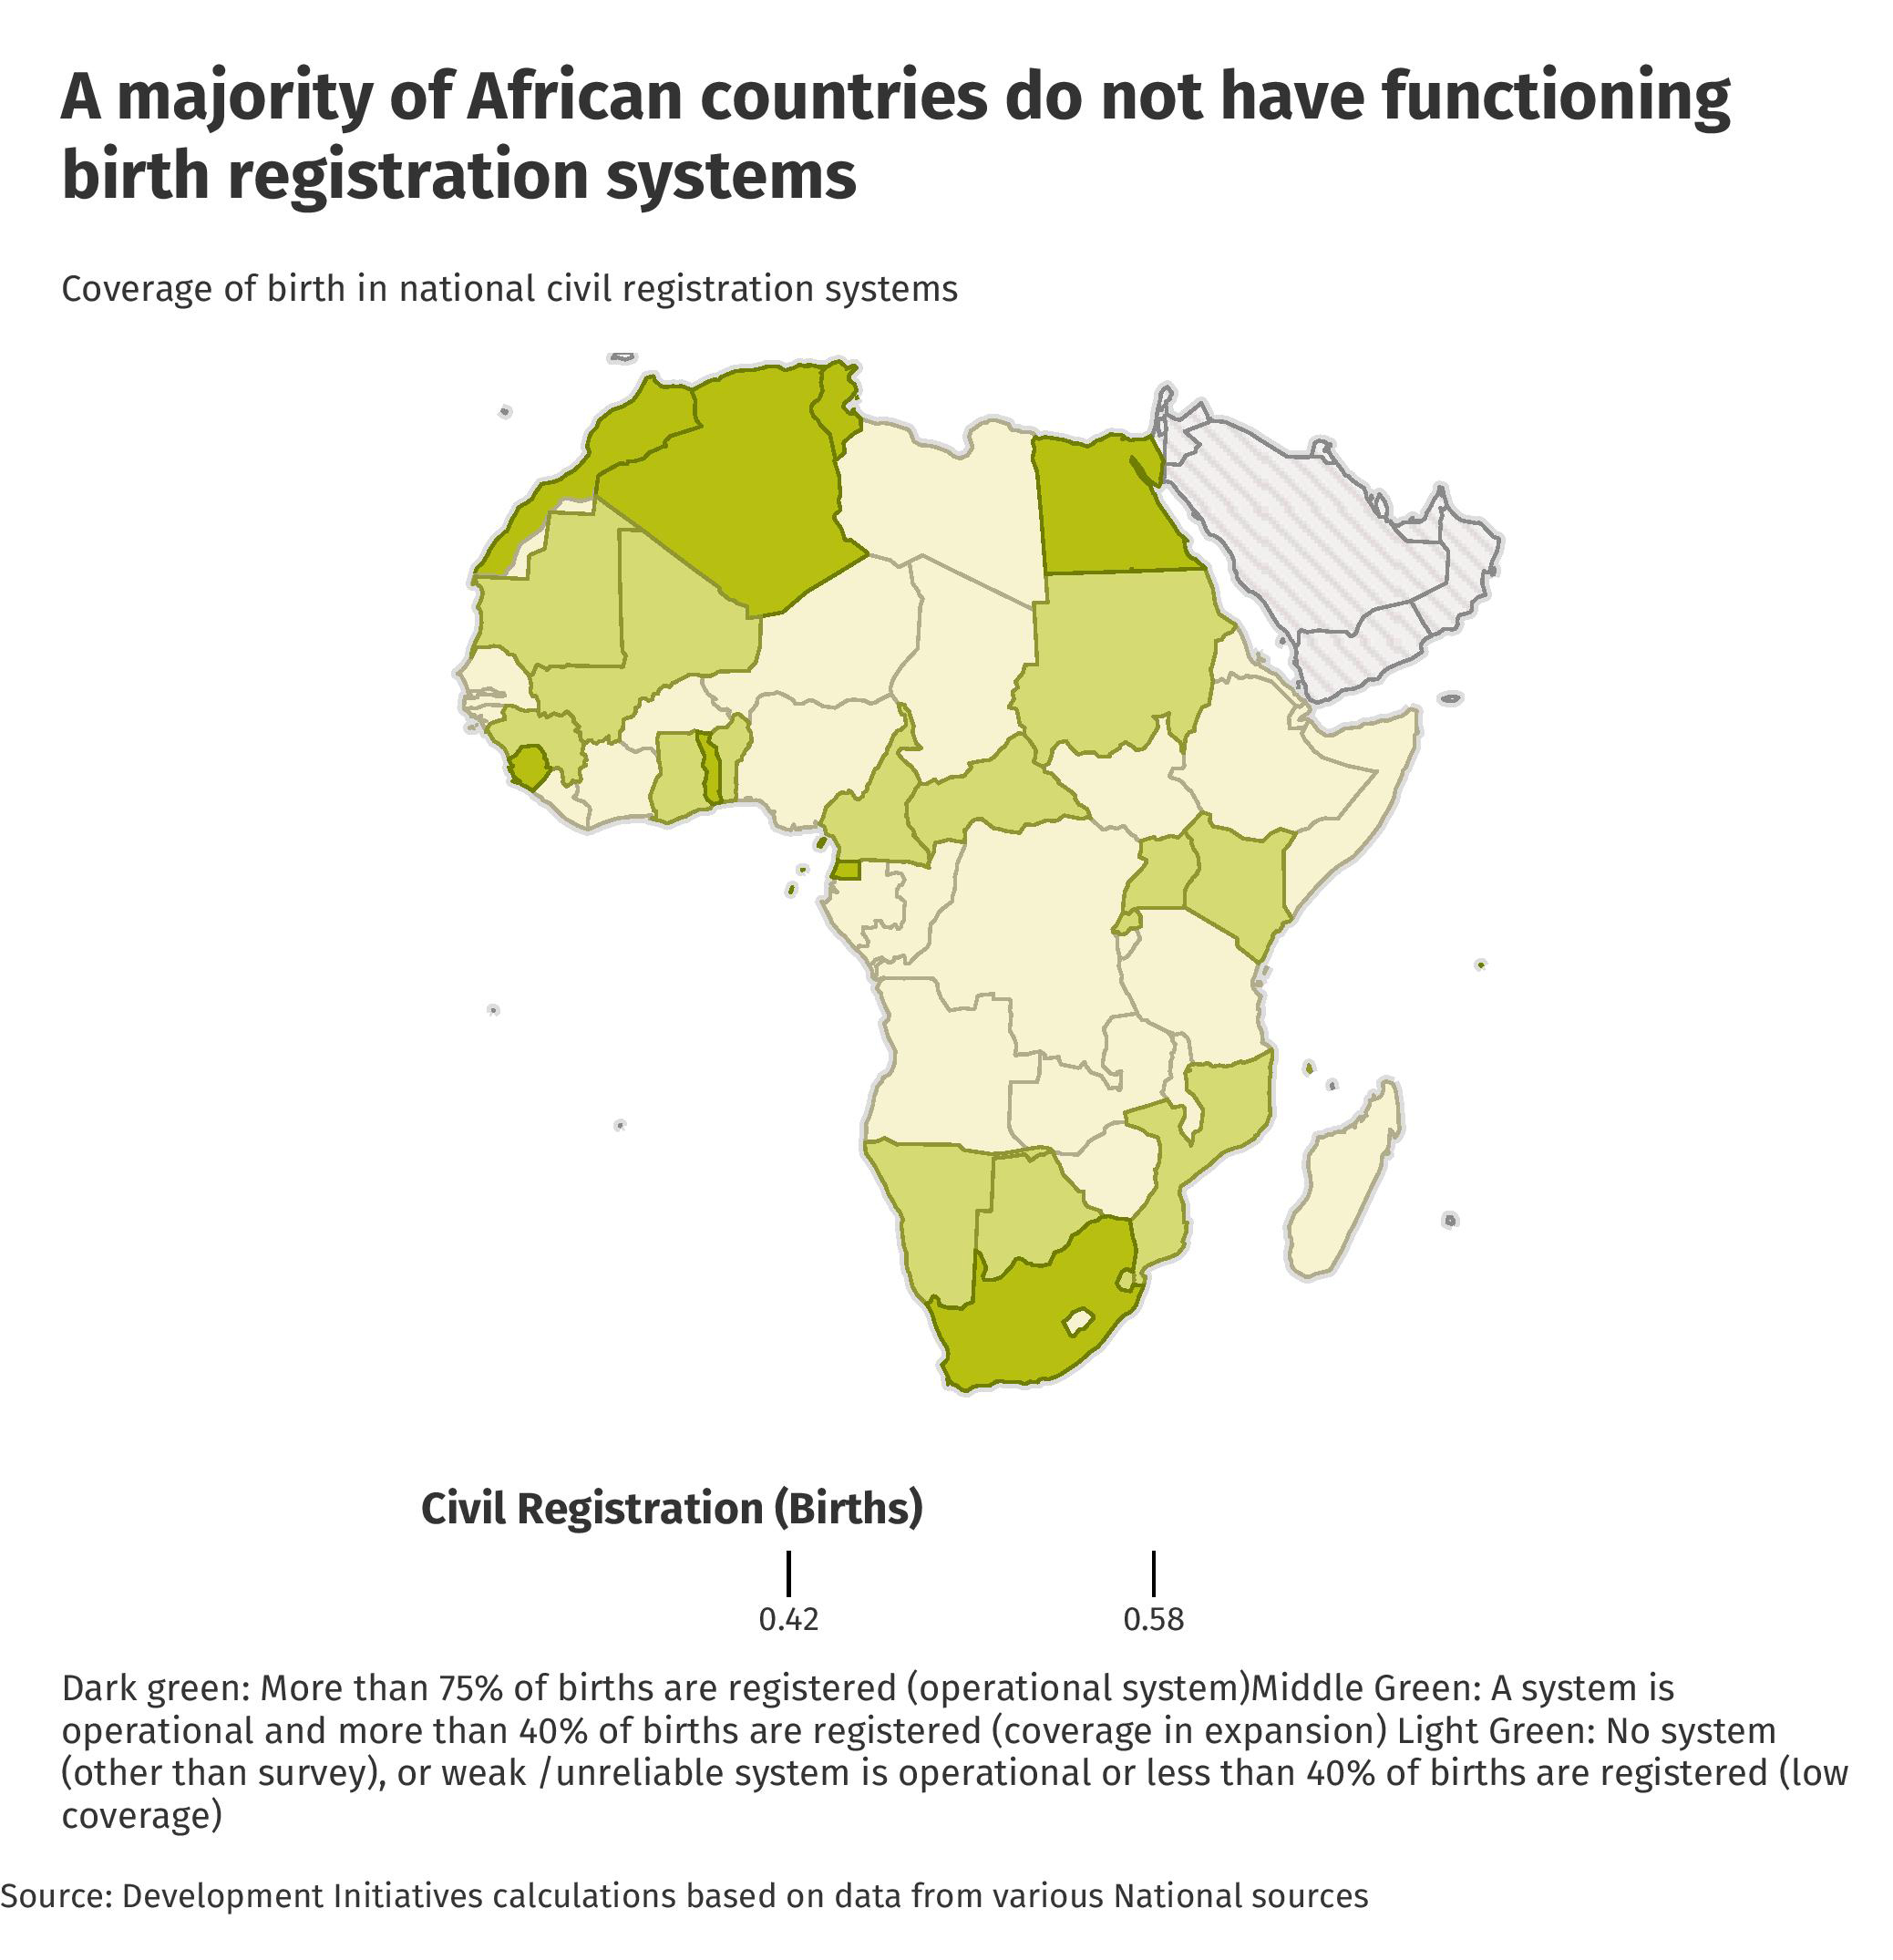 Functioning Birth Registration Systems Are Lacking In Most African